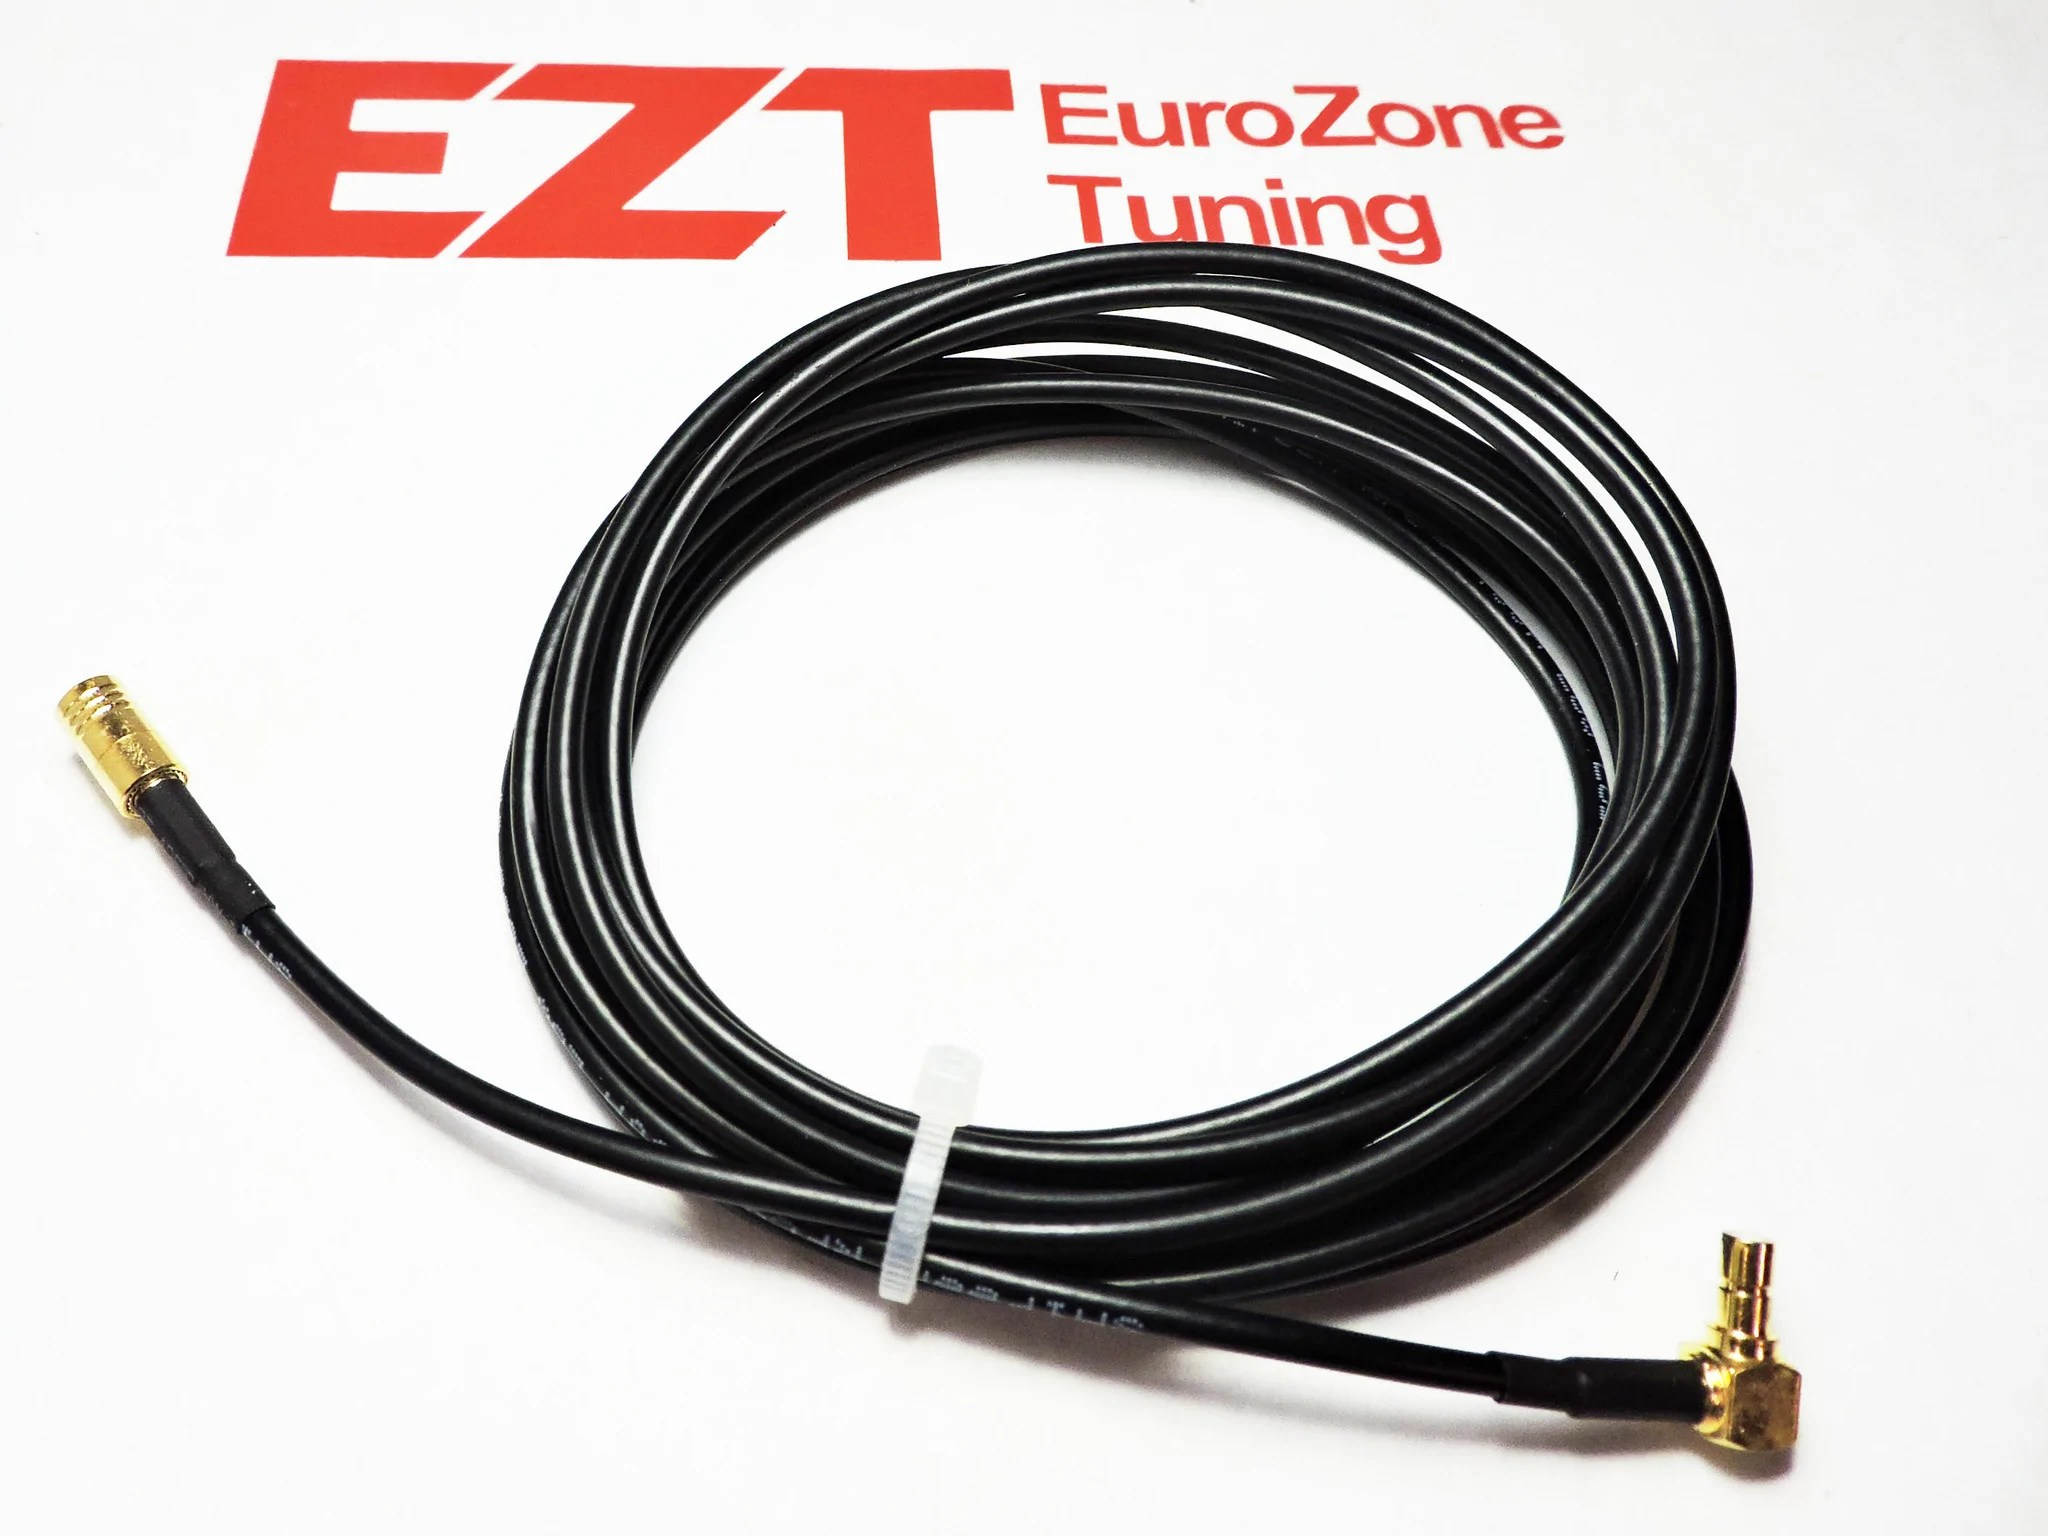 small resolution of vw sirius radio extension cable